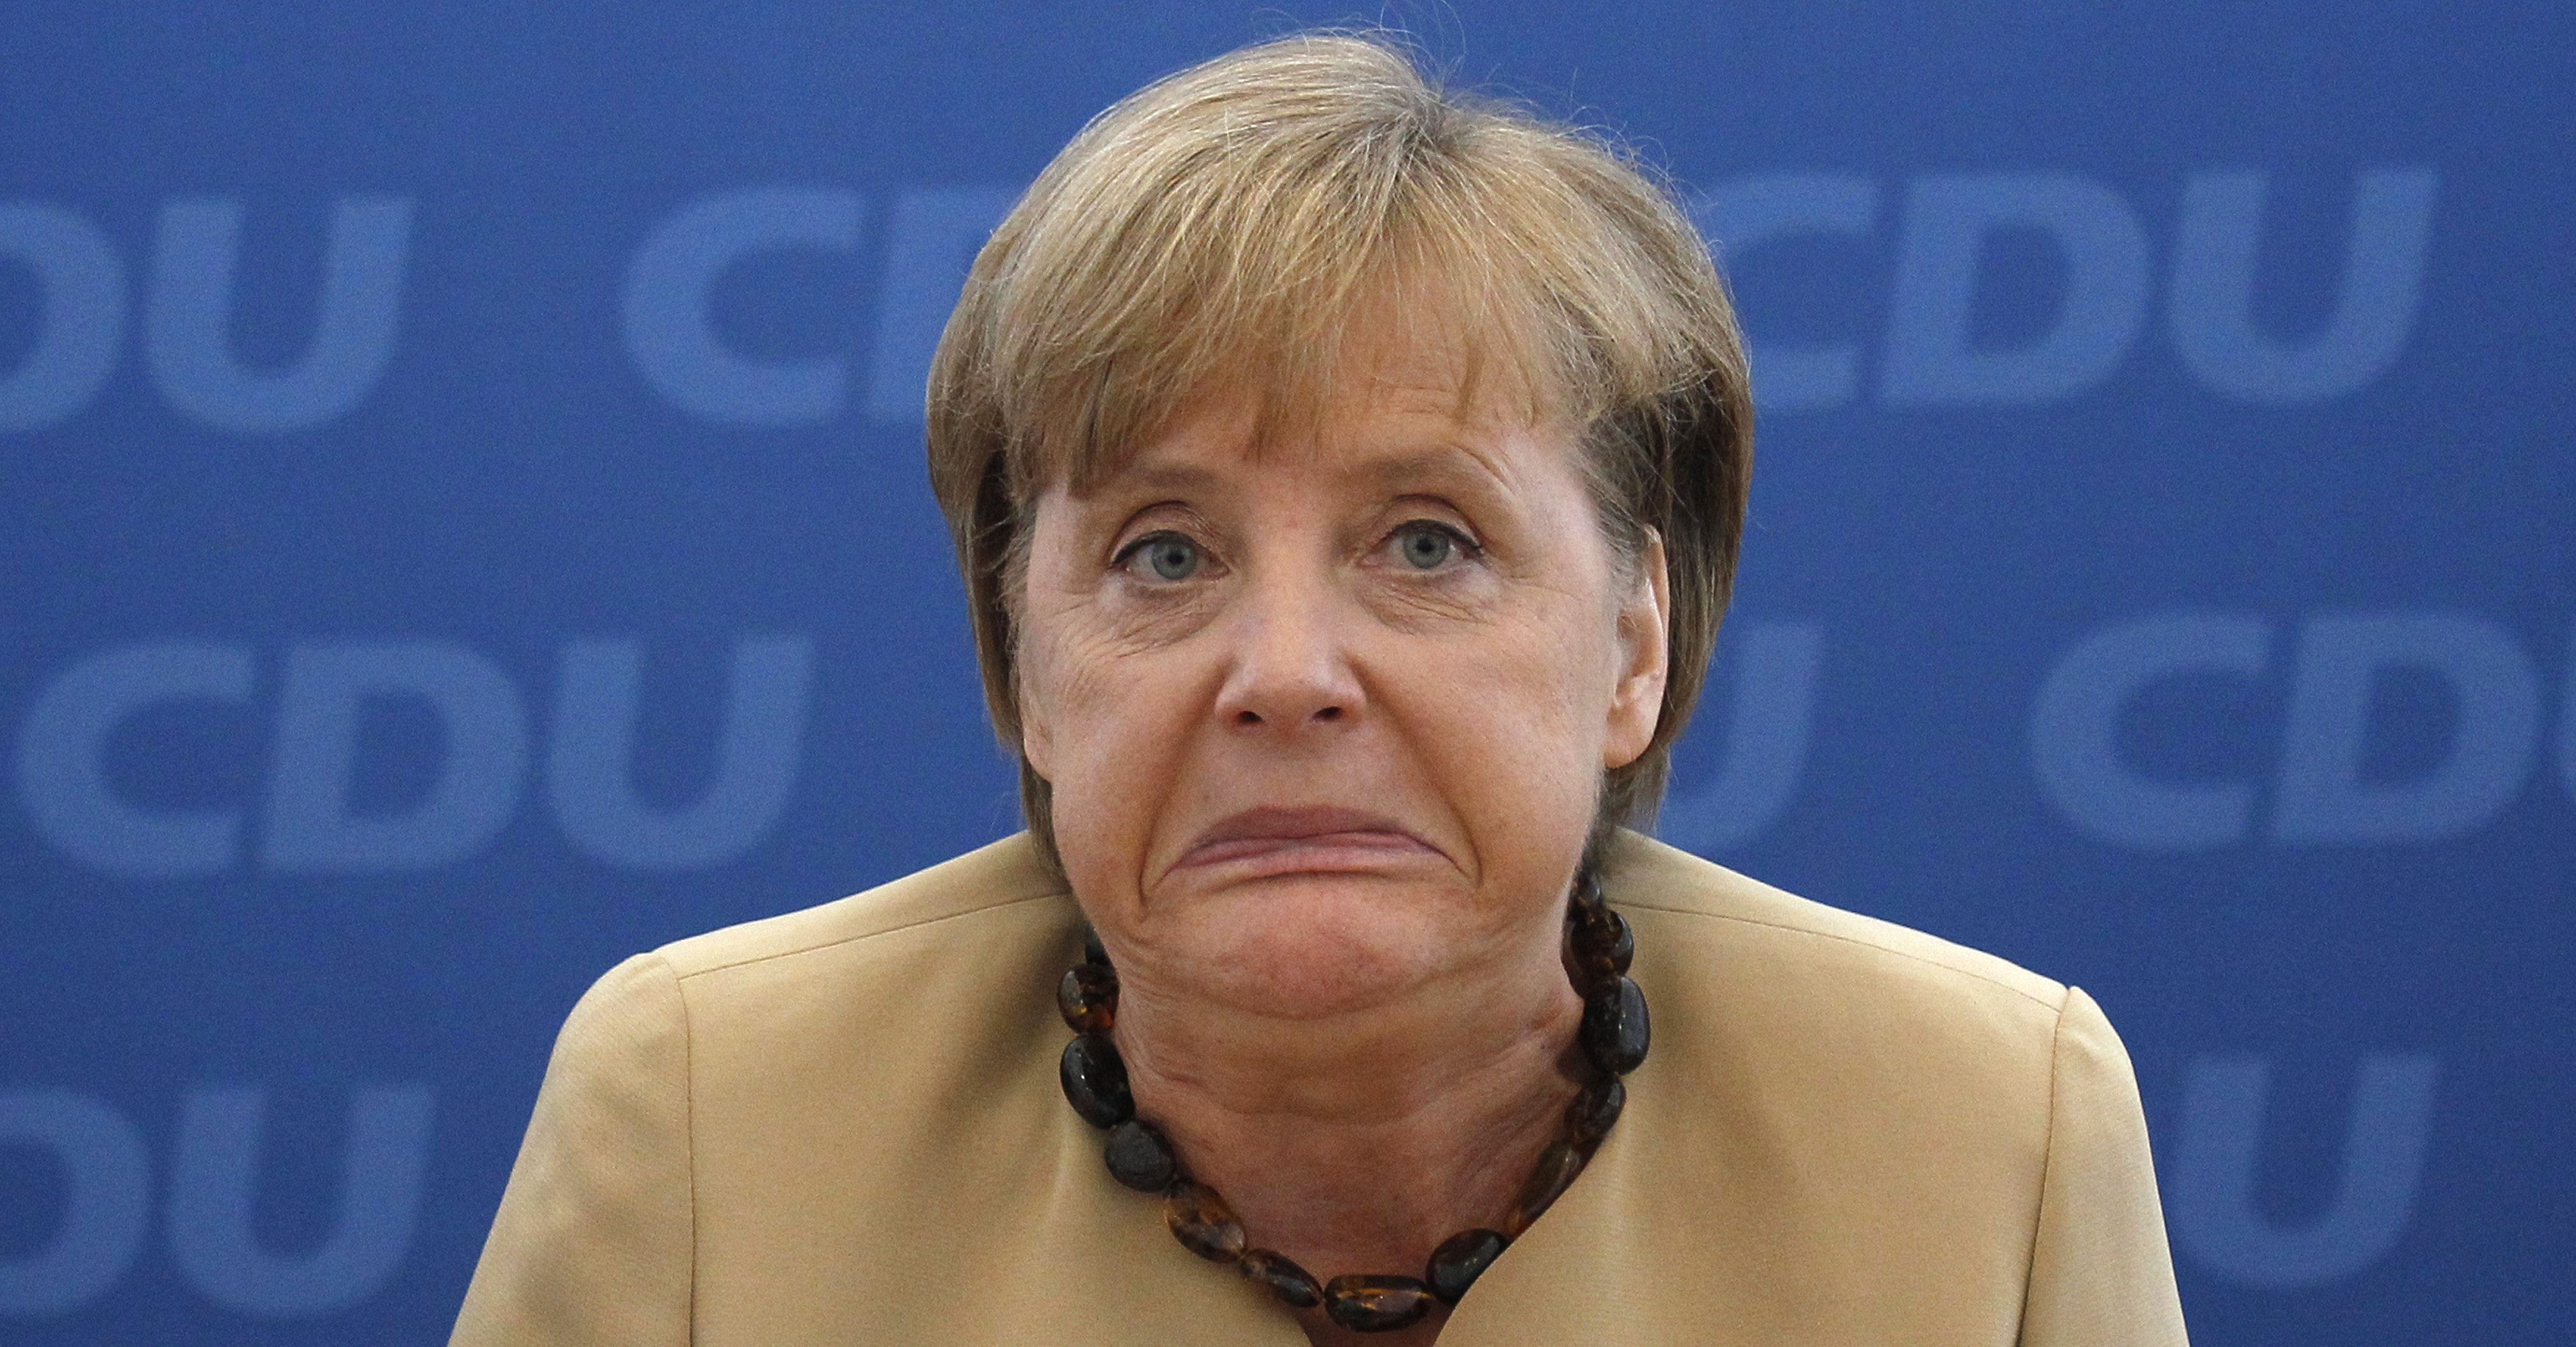 German Chancellor and head of German CDU party Merkel awaits start of party board meeting in Berlin